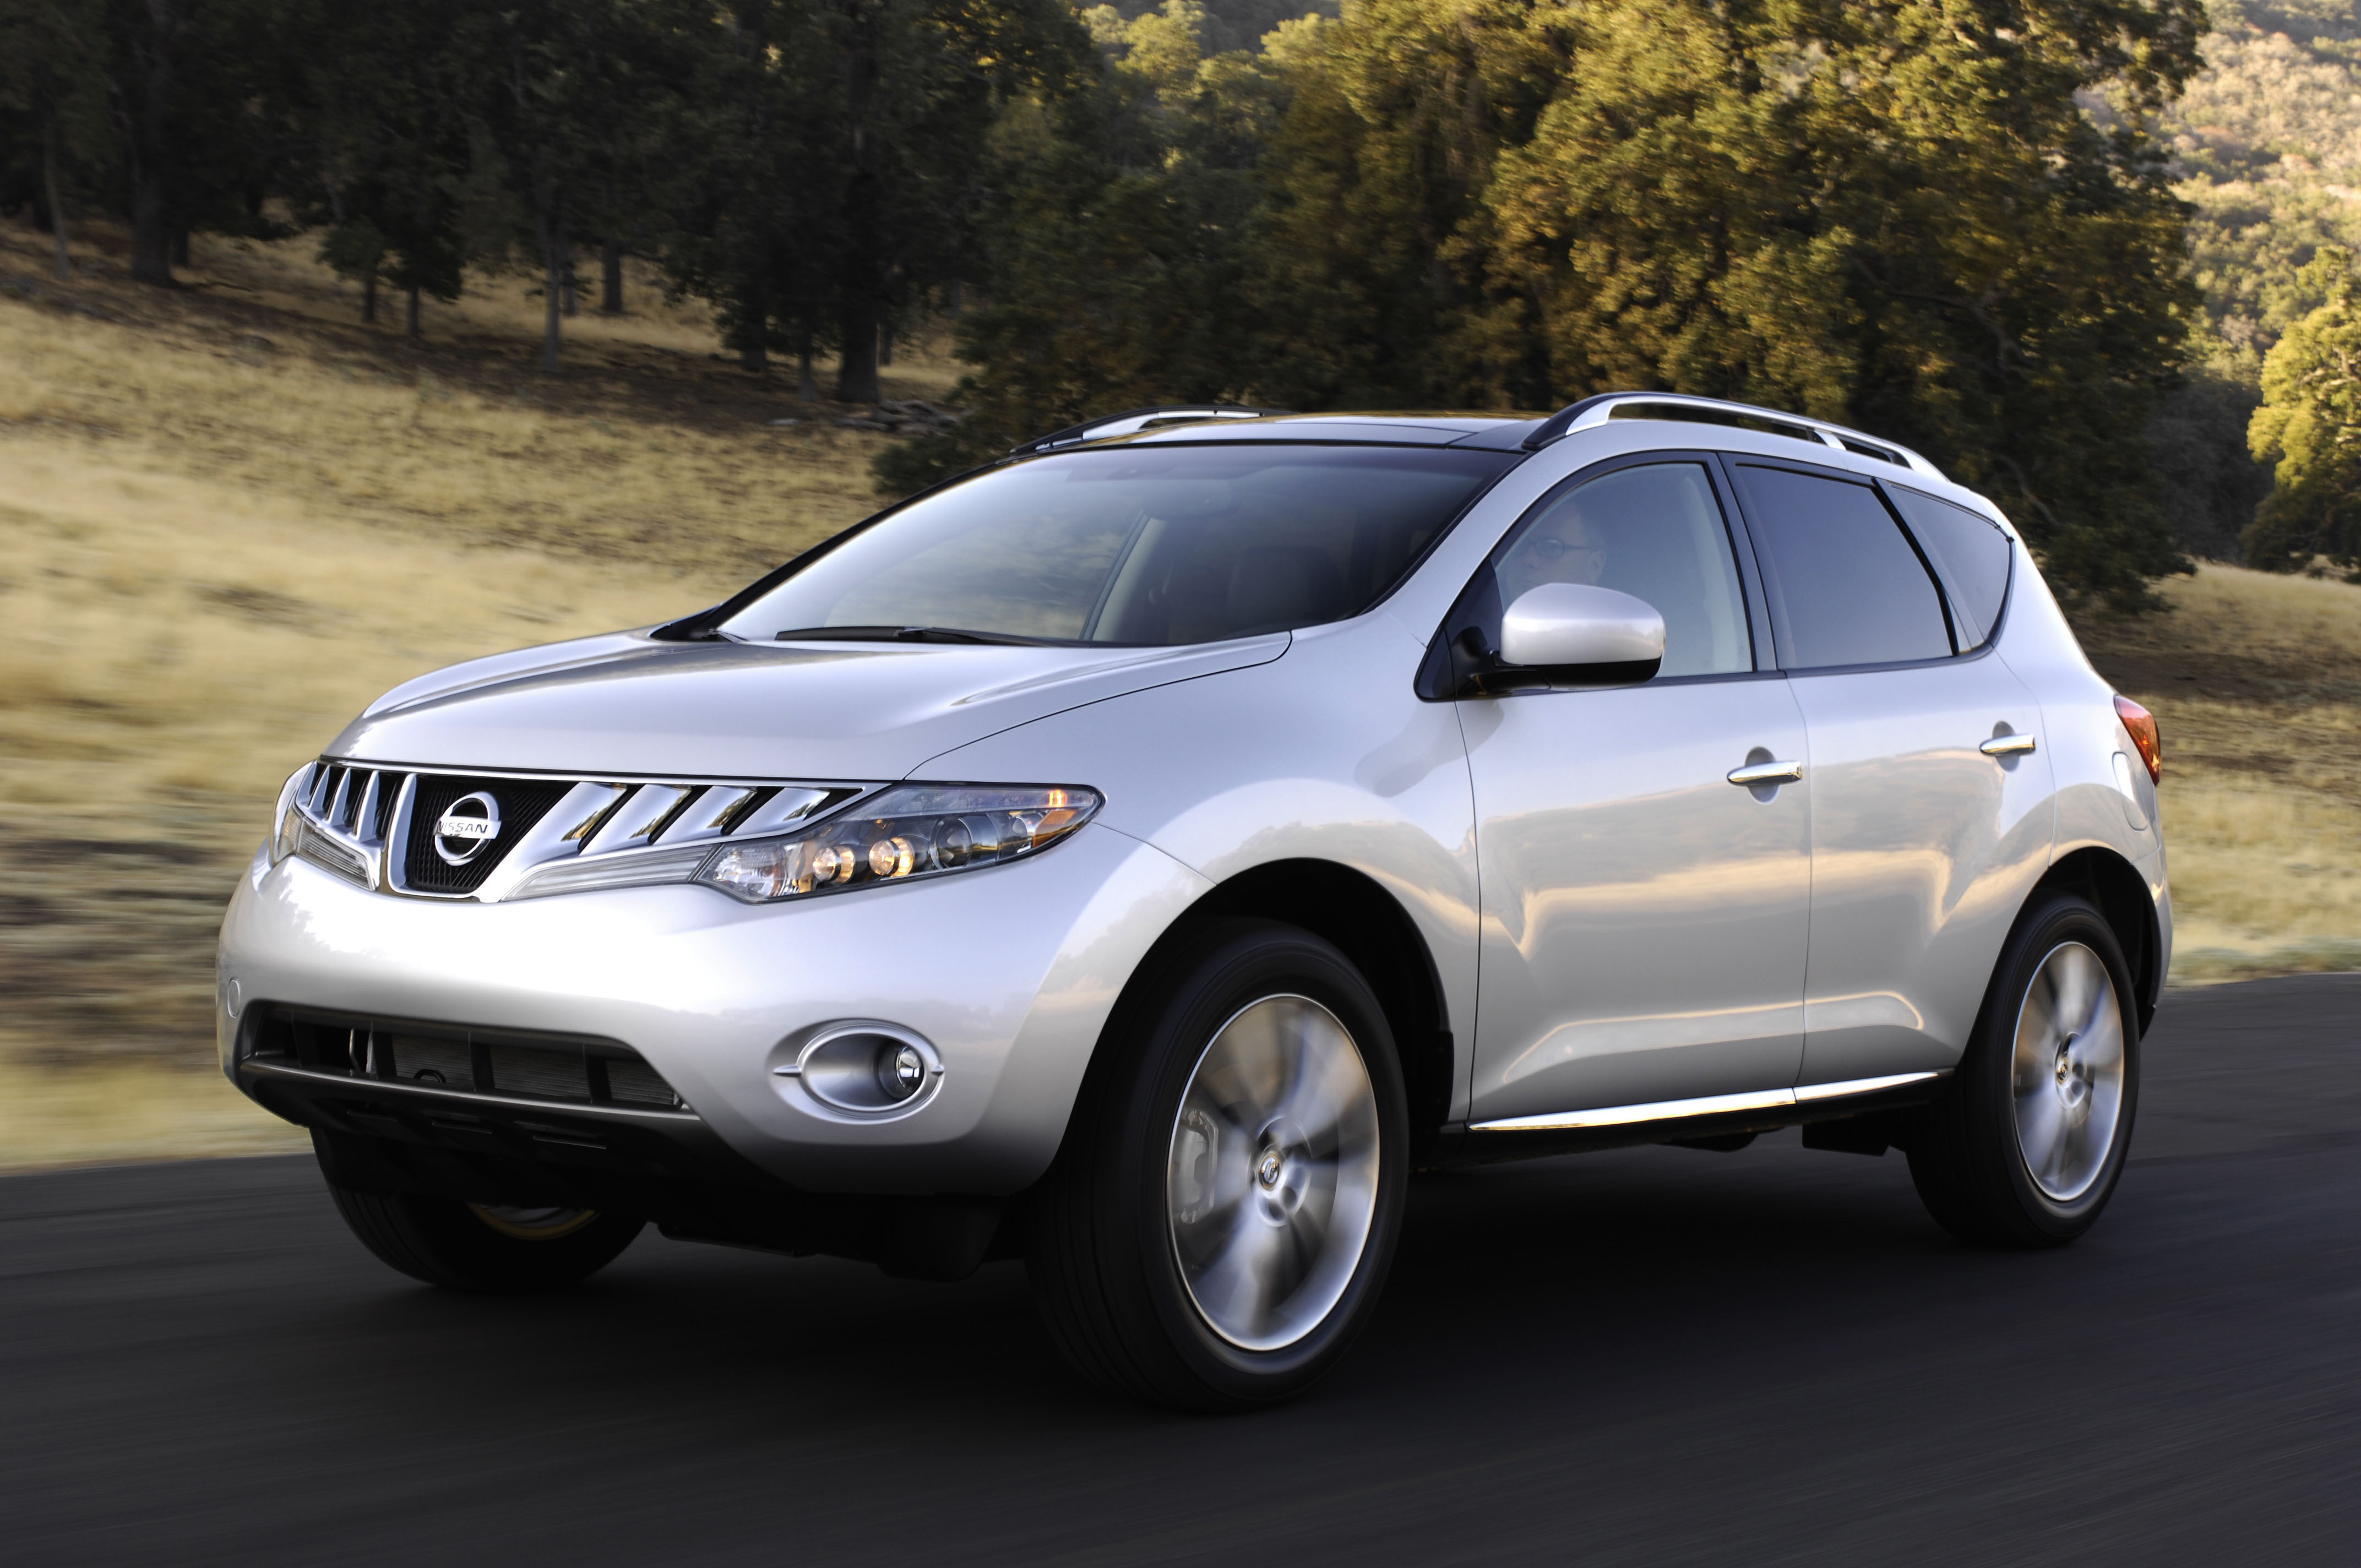 Nissan recalls 86K older SUVs due to risk defect could increase stopping distance